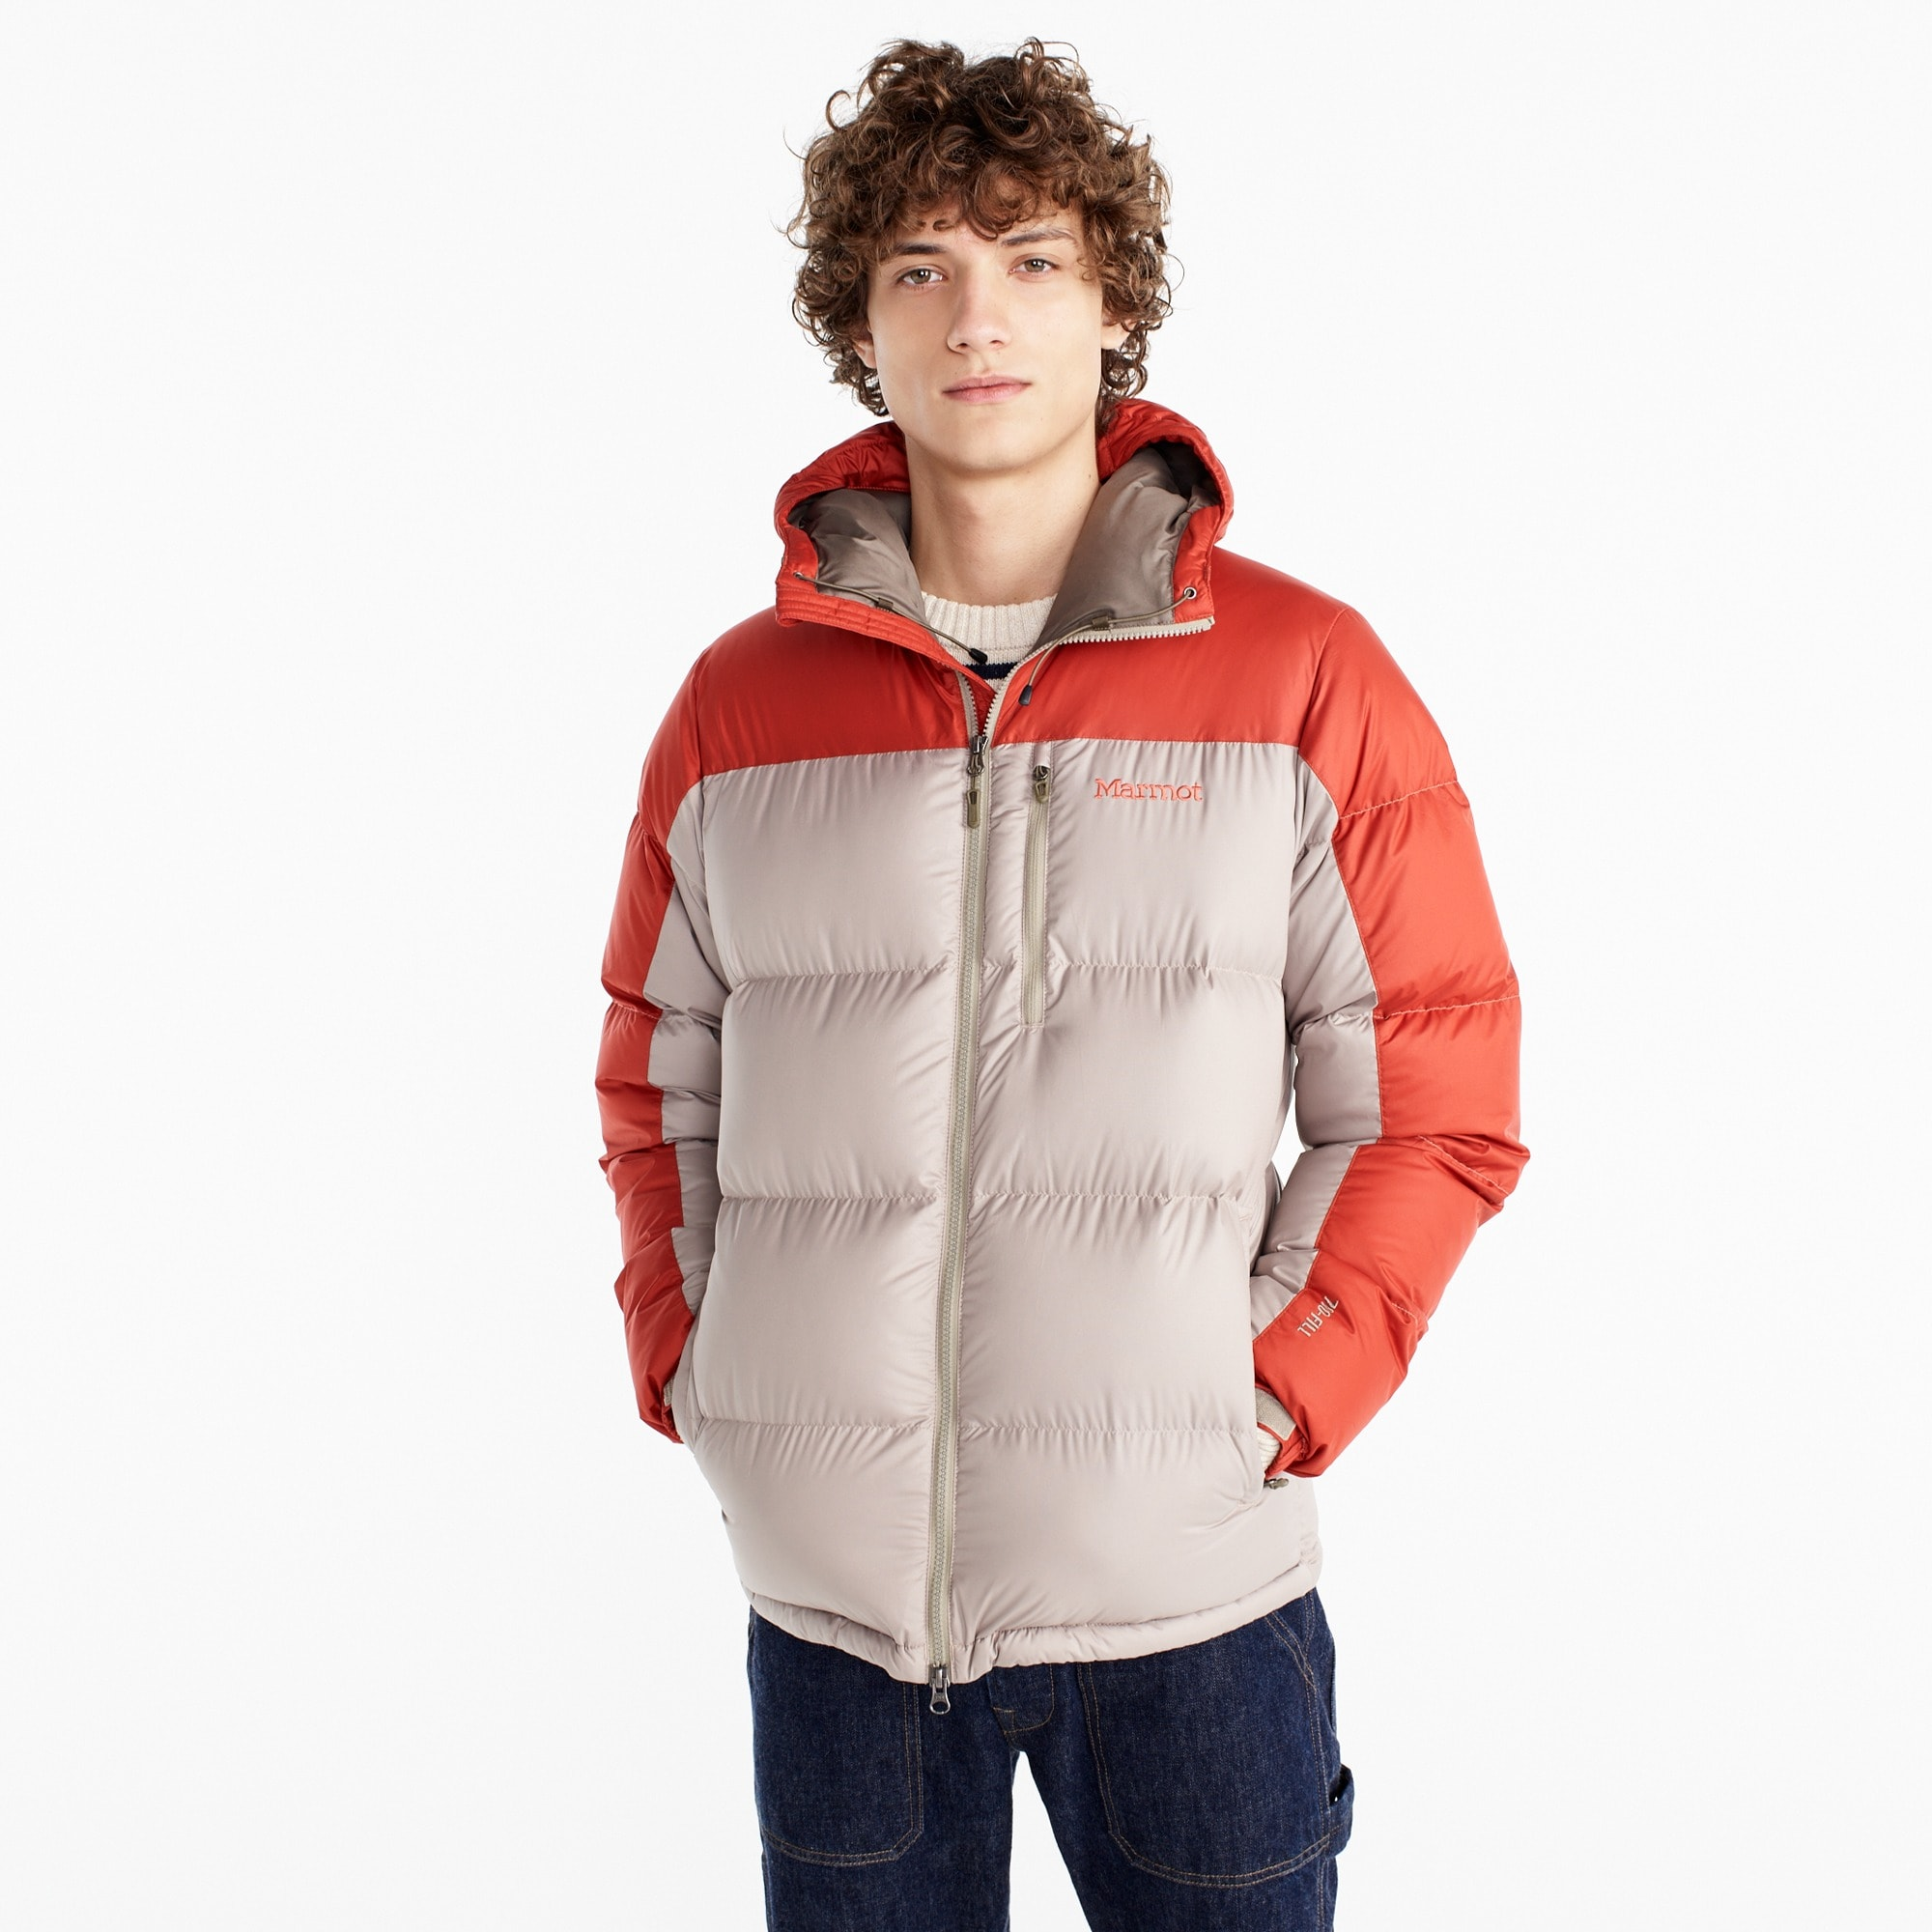 Marmot® for J.Crew Guides down hoodie men j.crew in good company c